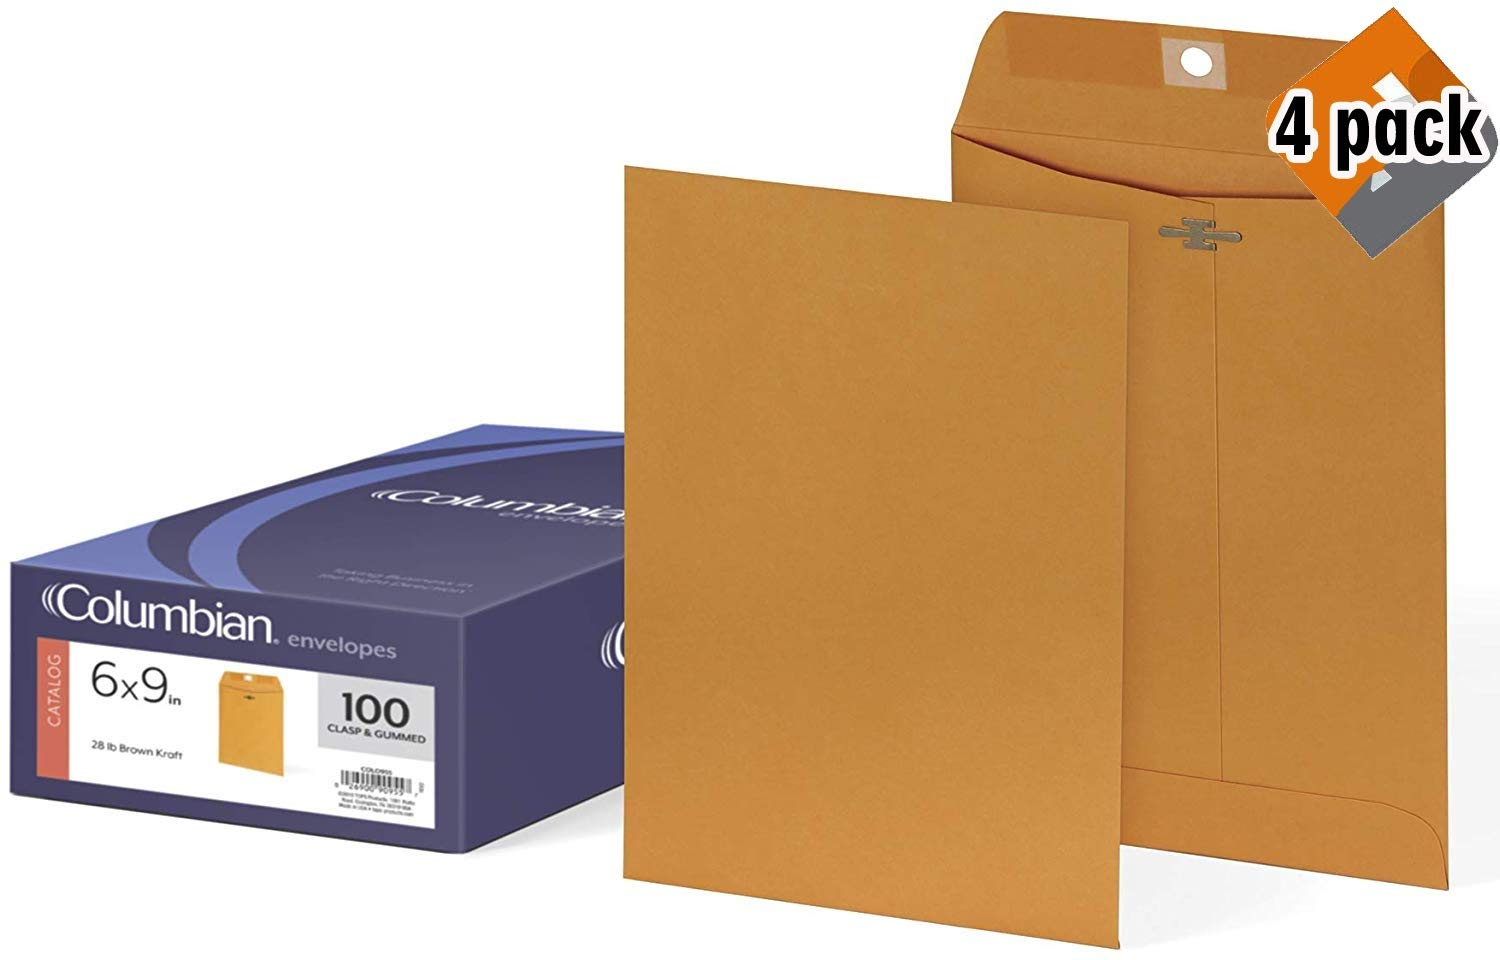 Columbian Clasp Envelopes, 6 x 9 Inches, Brown Kraft, 100 Per Box (CO955) - 4 Pack by Columbian Envelopes